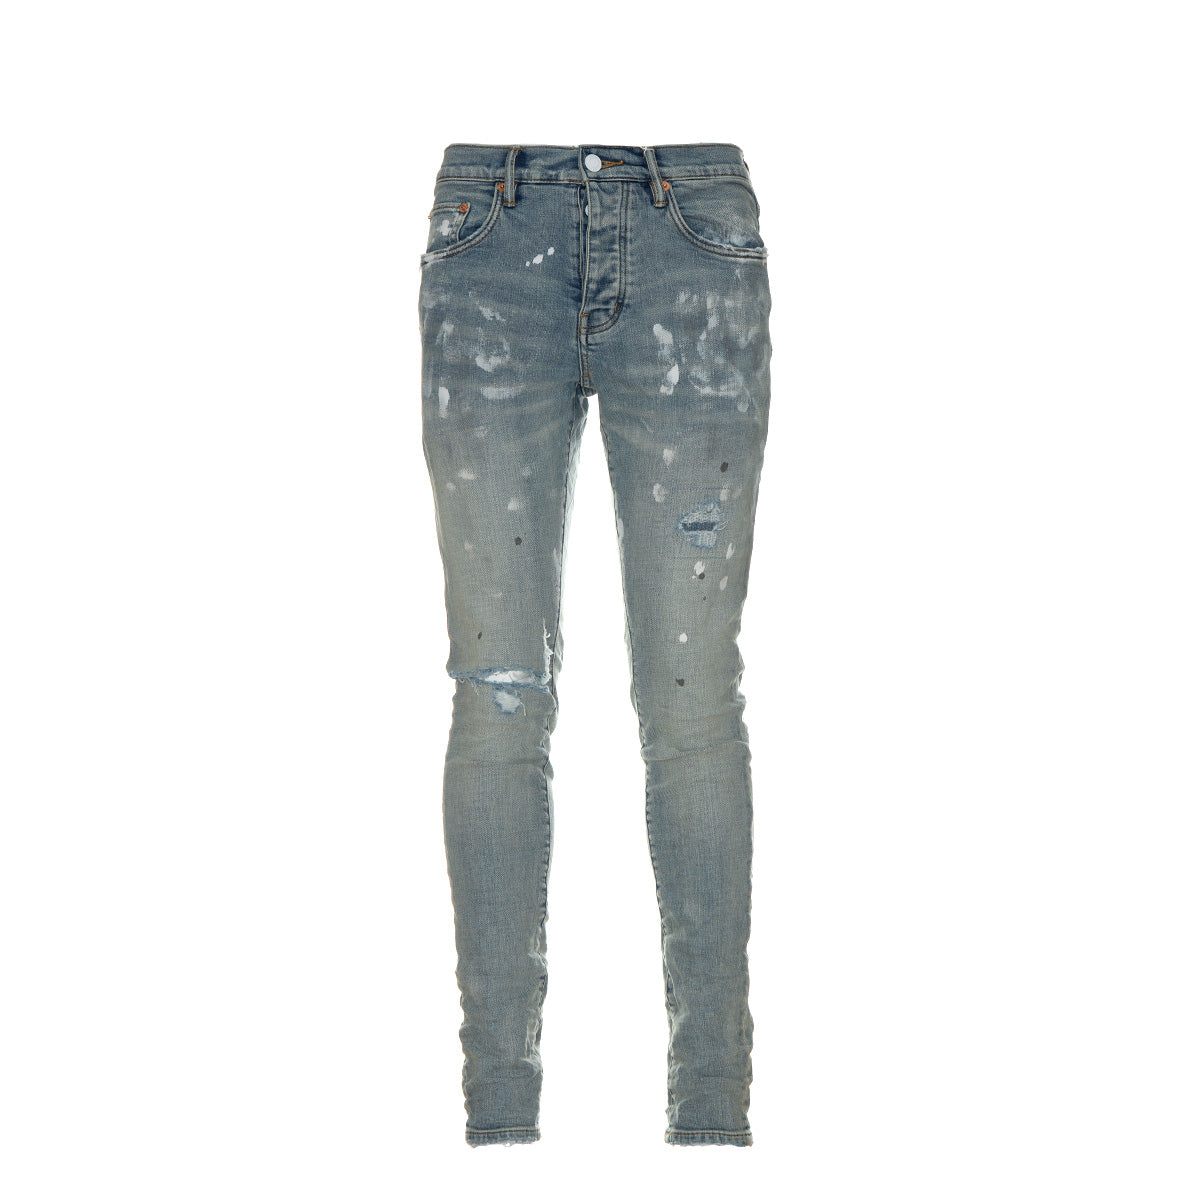 P001 Light Indigo Paint Blowout Jeans